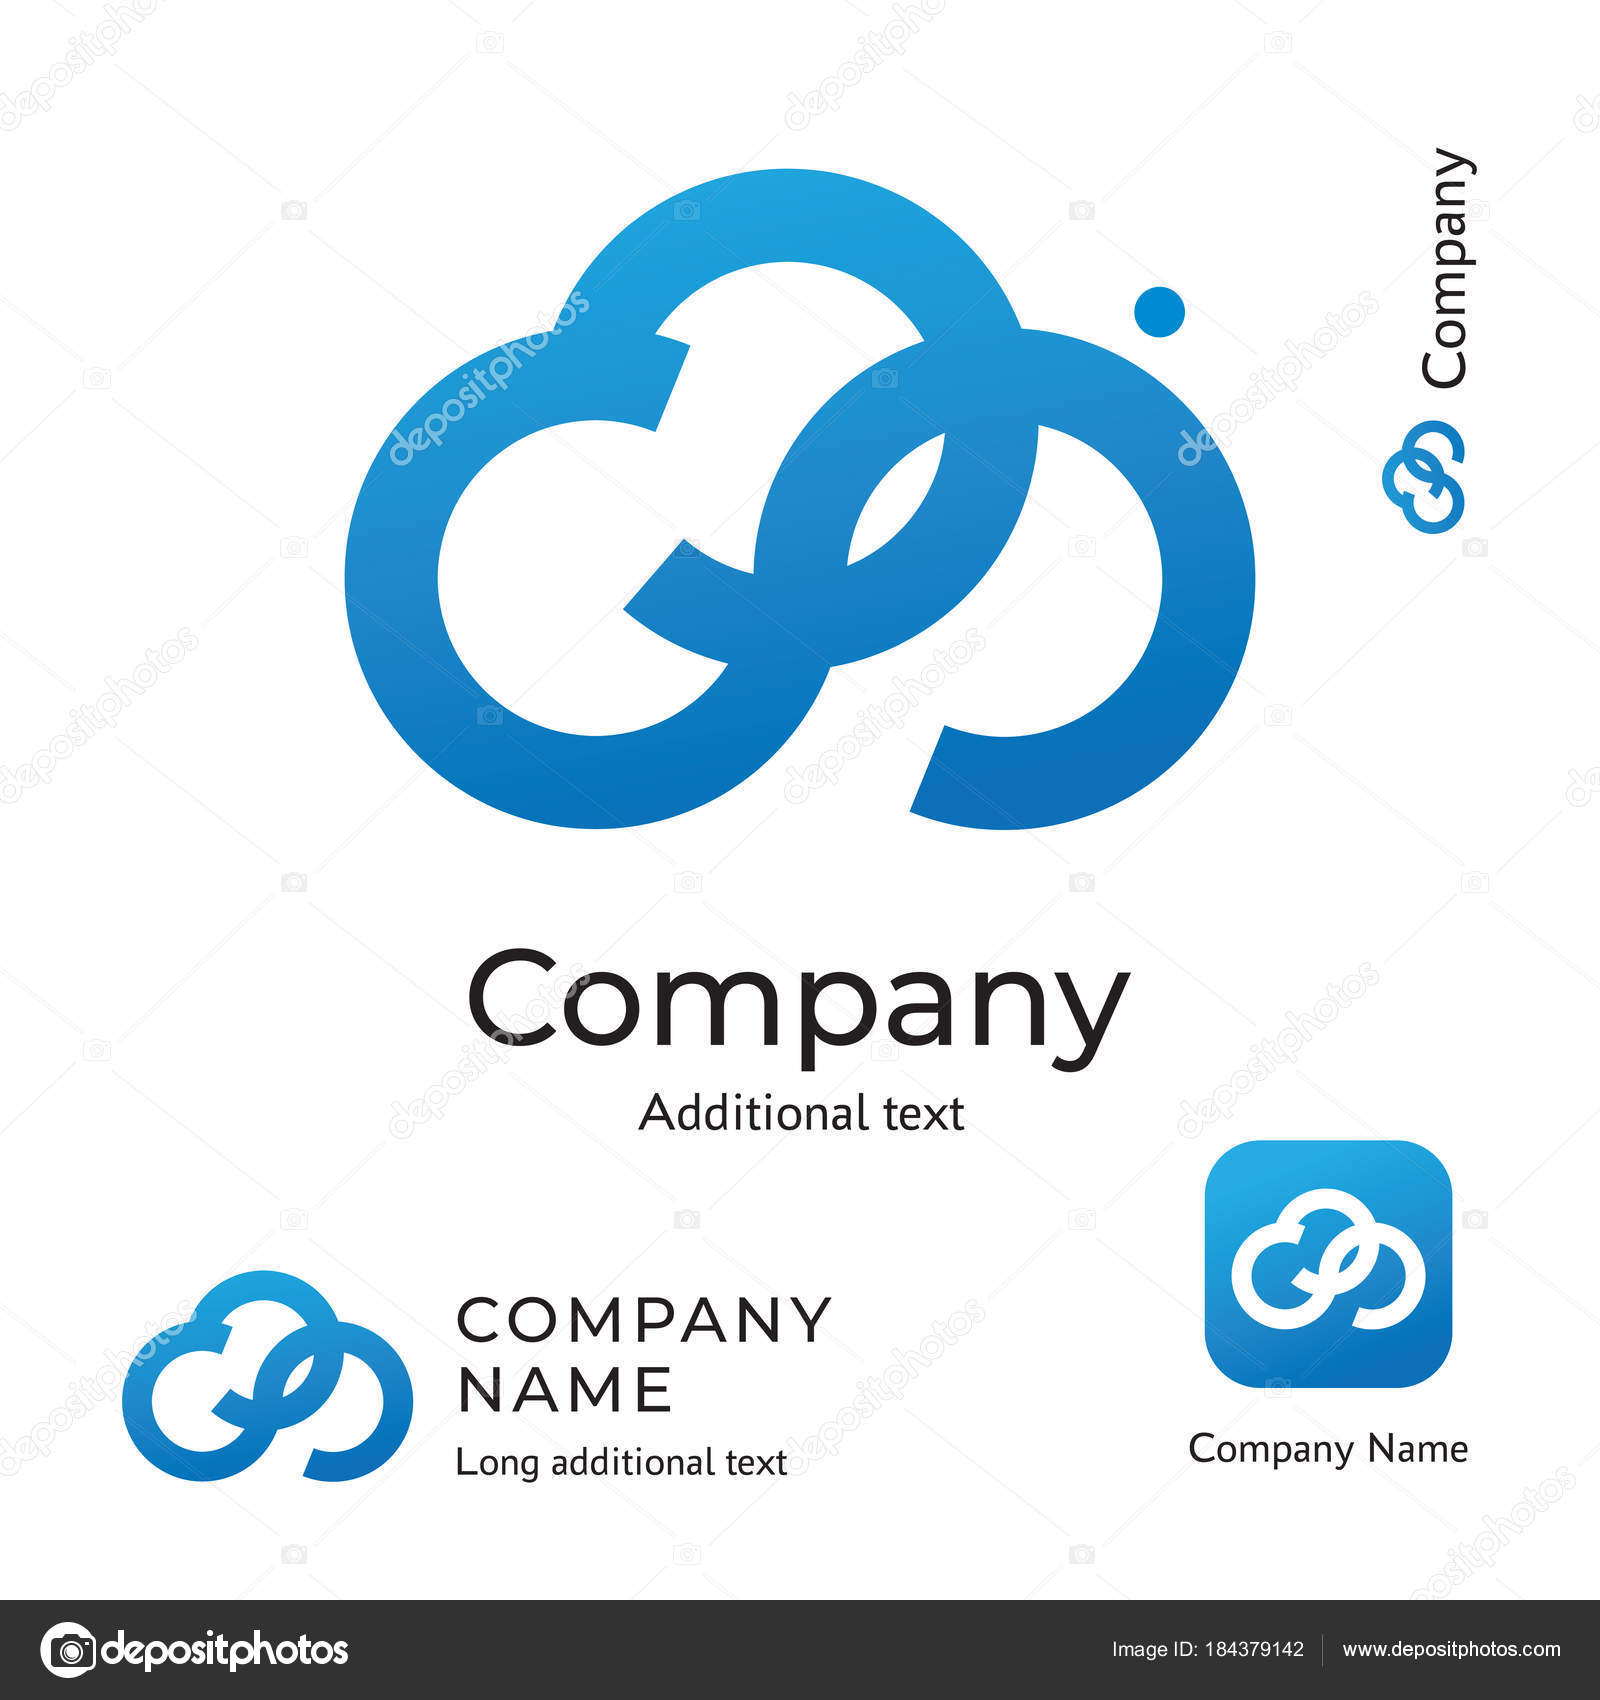 cloud digital logo technological abstract modern design business identity brand and app icon symbol concept set template stock vector c vaniaplatonov 184379142 https depositphotos com 184379142 stock illustration cloud digital logo technological abstract html